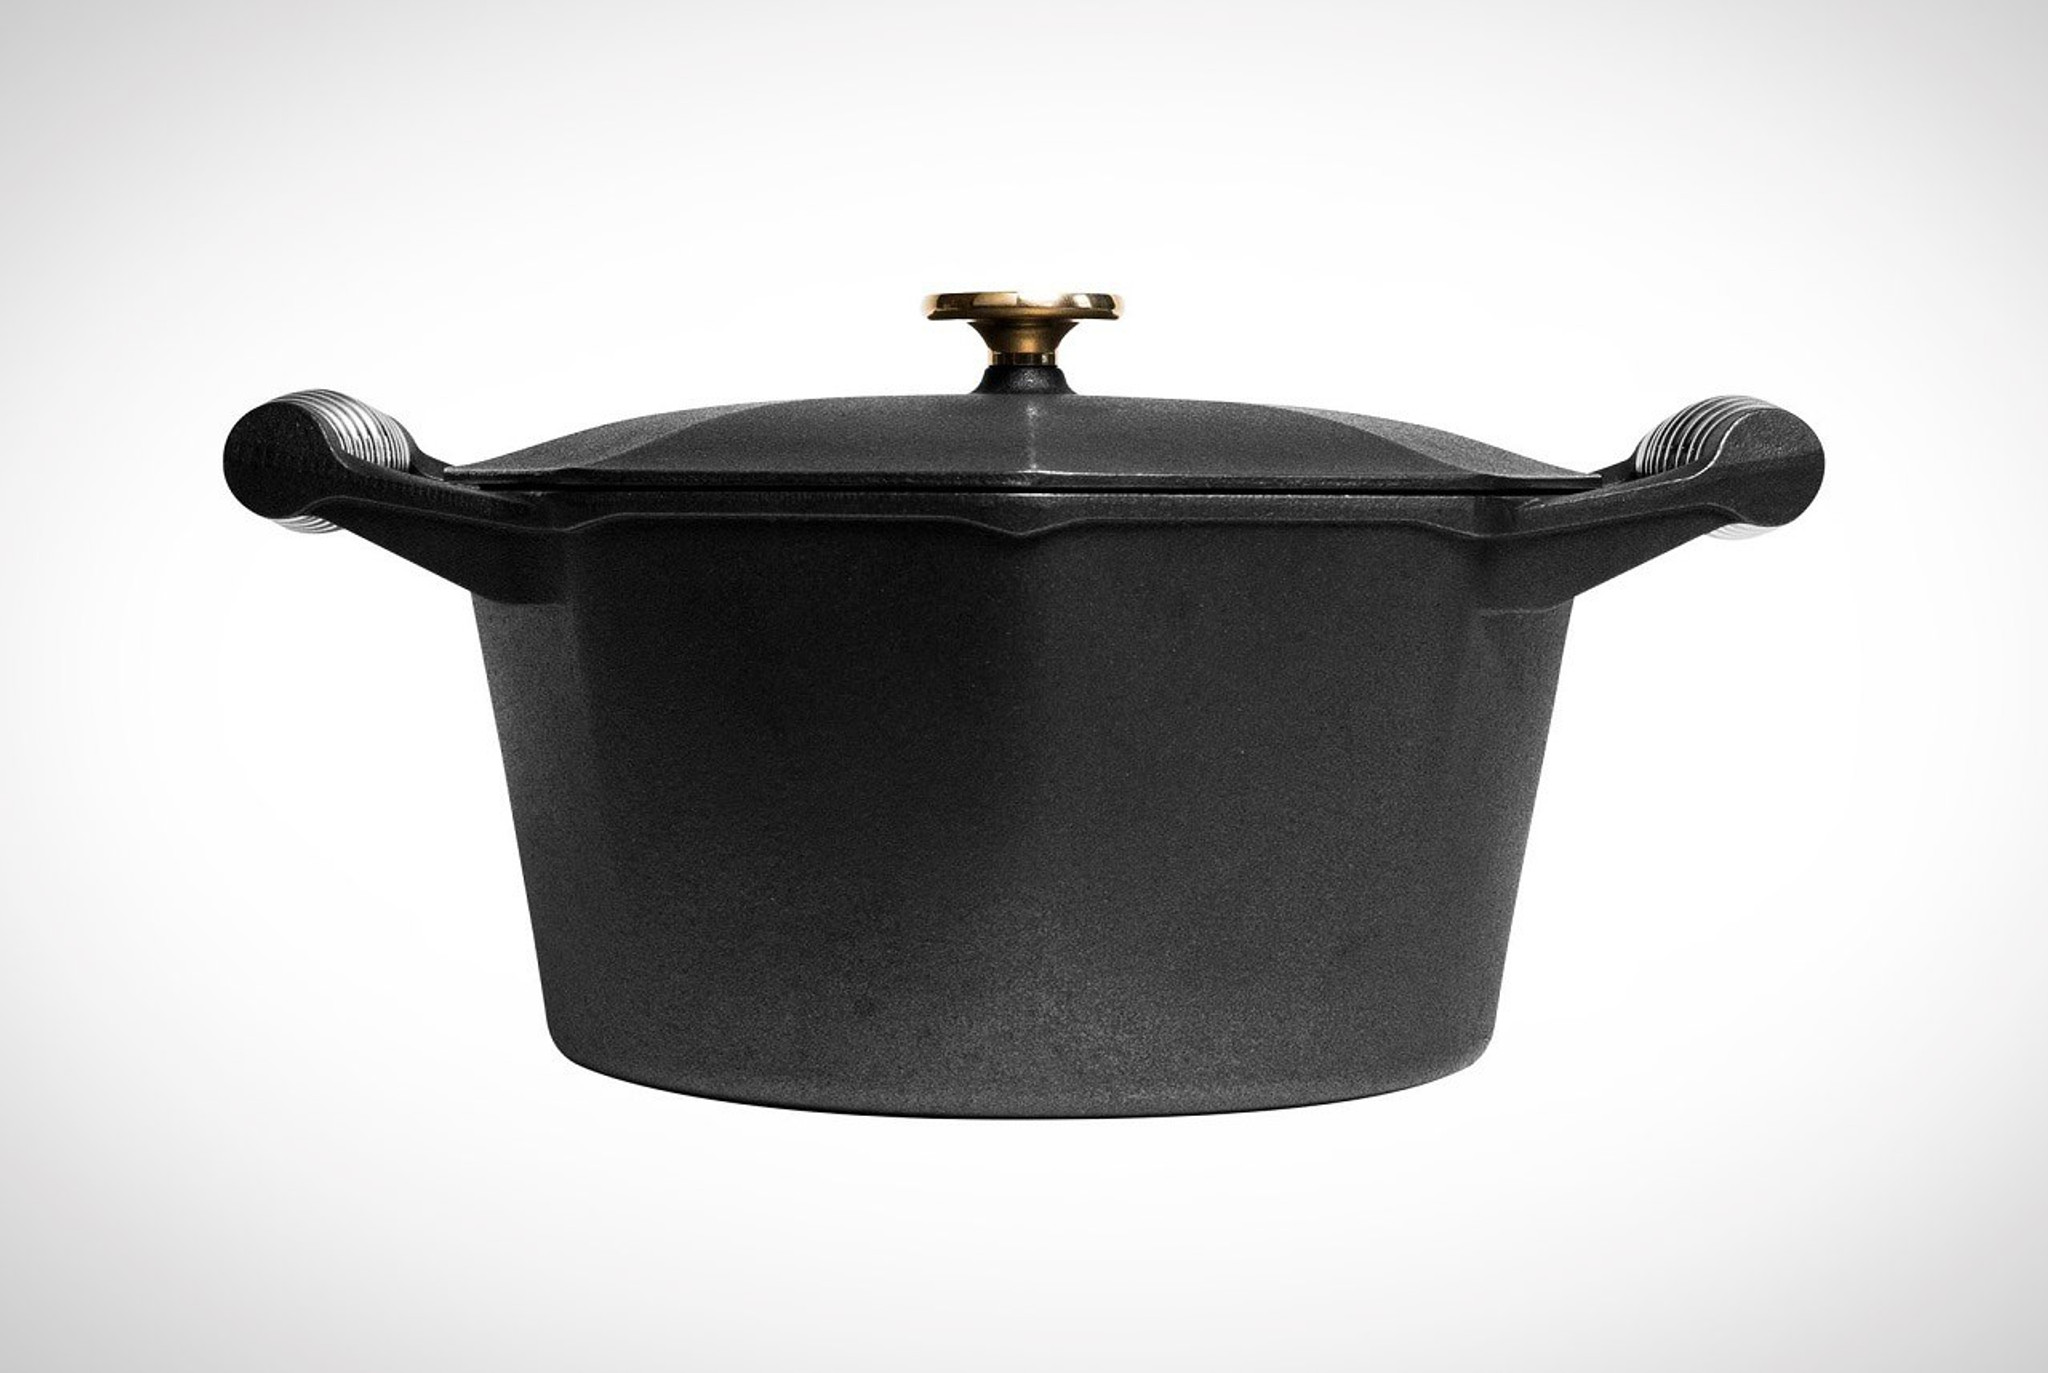 Finex Dutch Oven